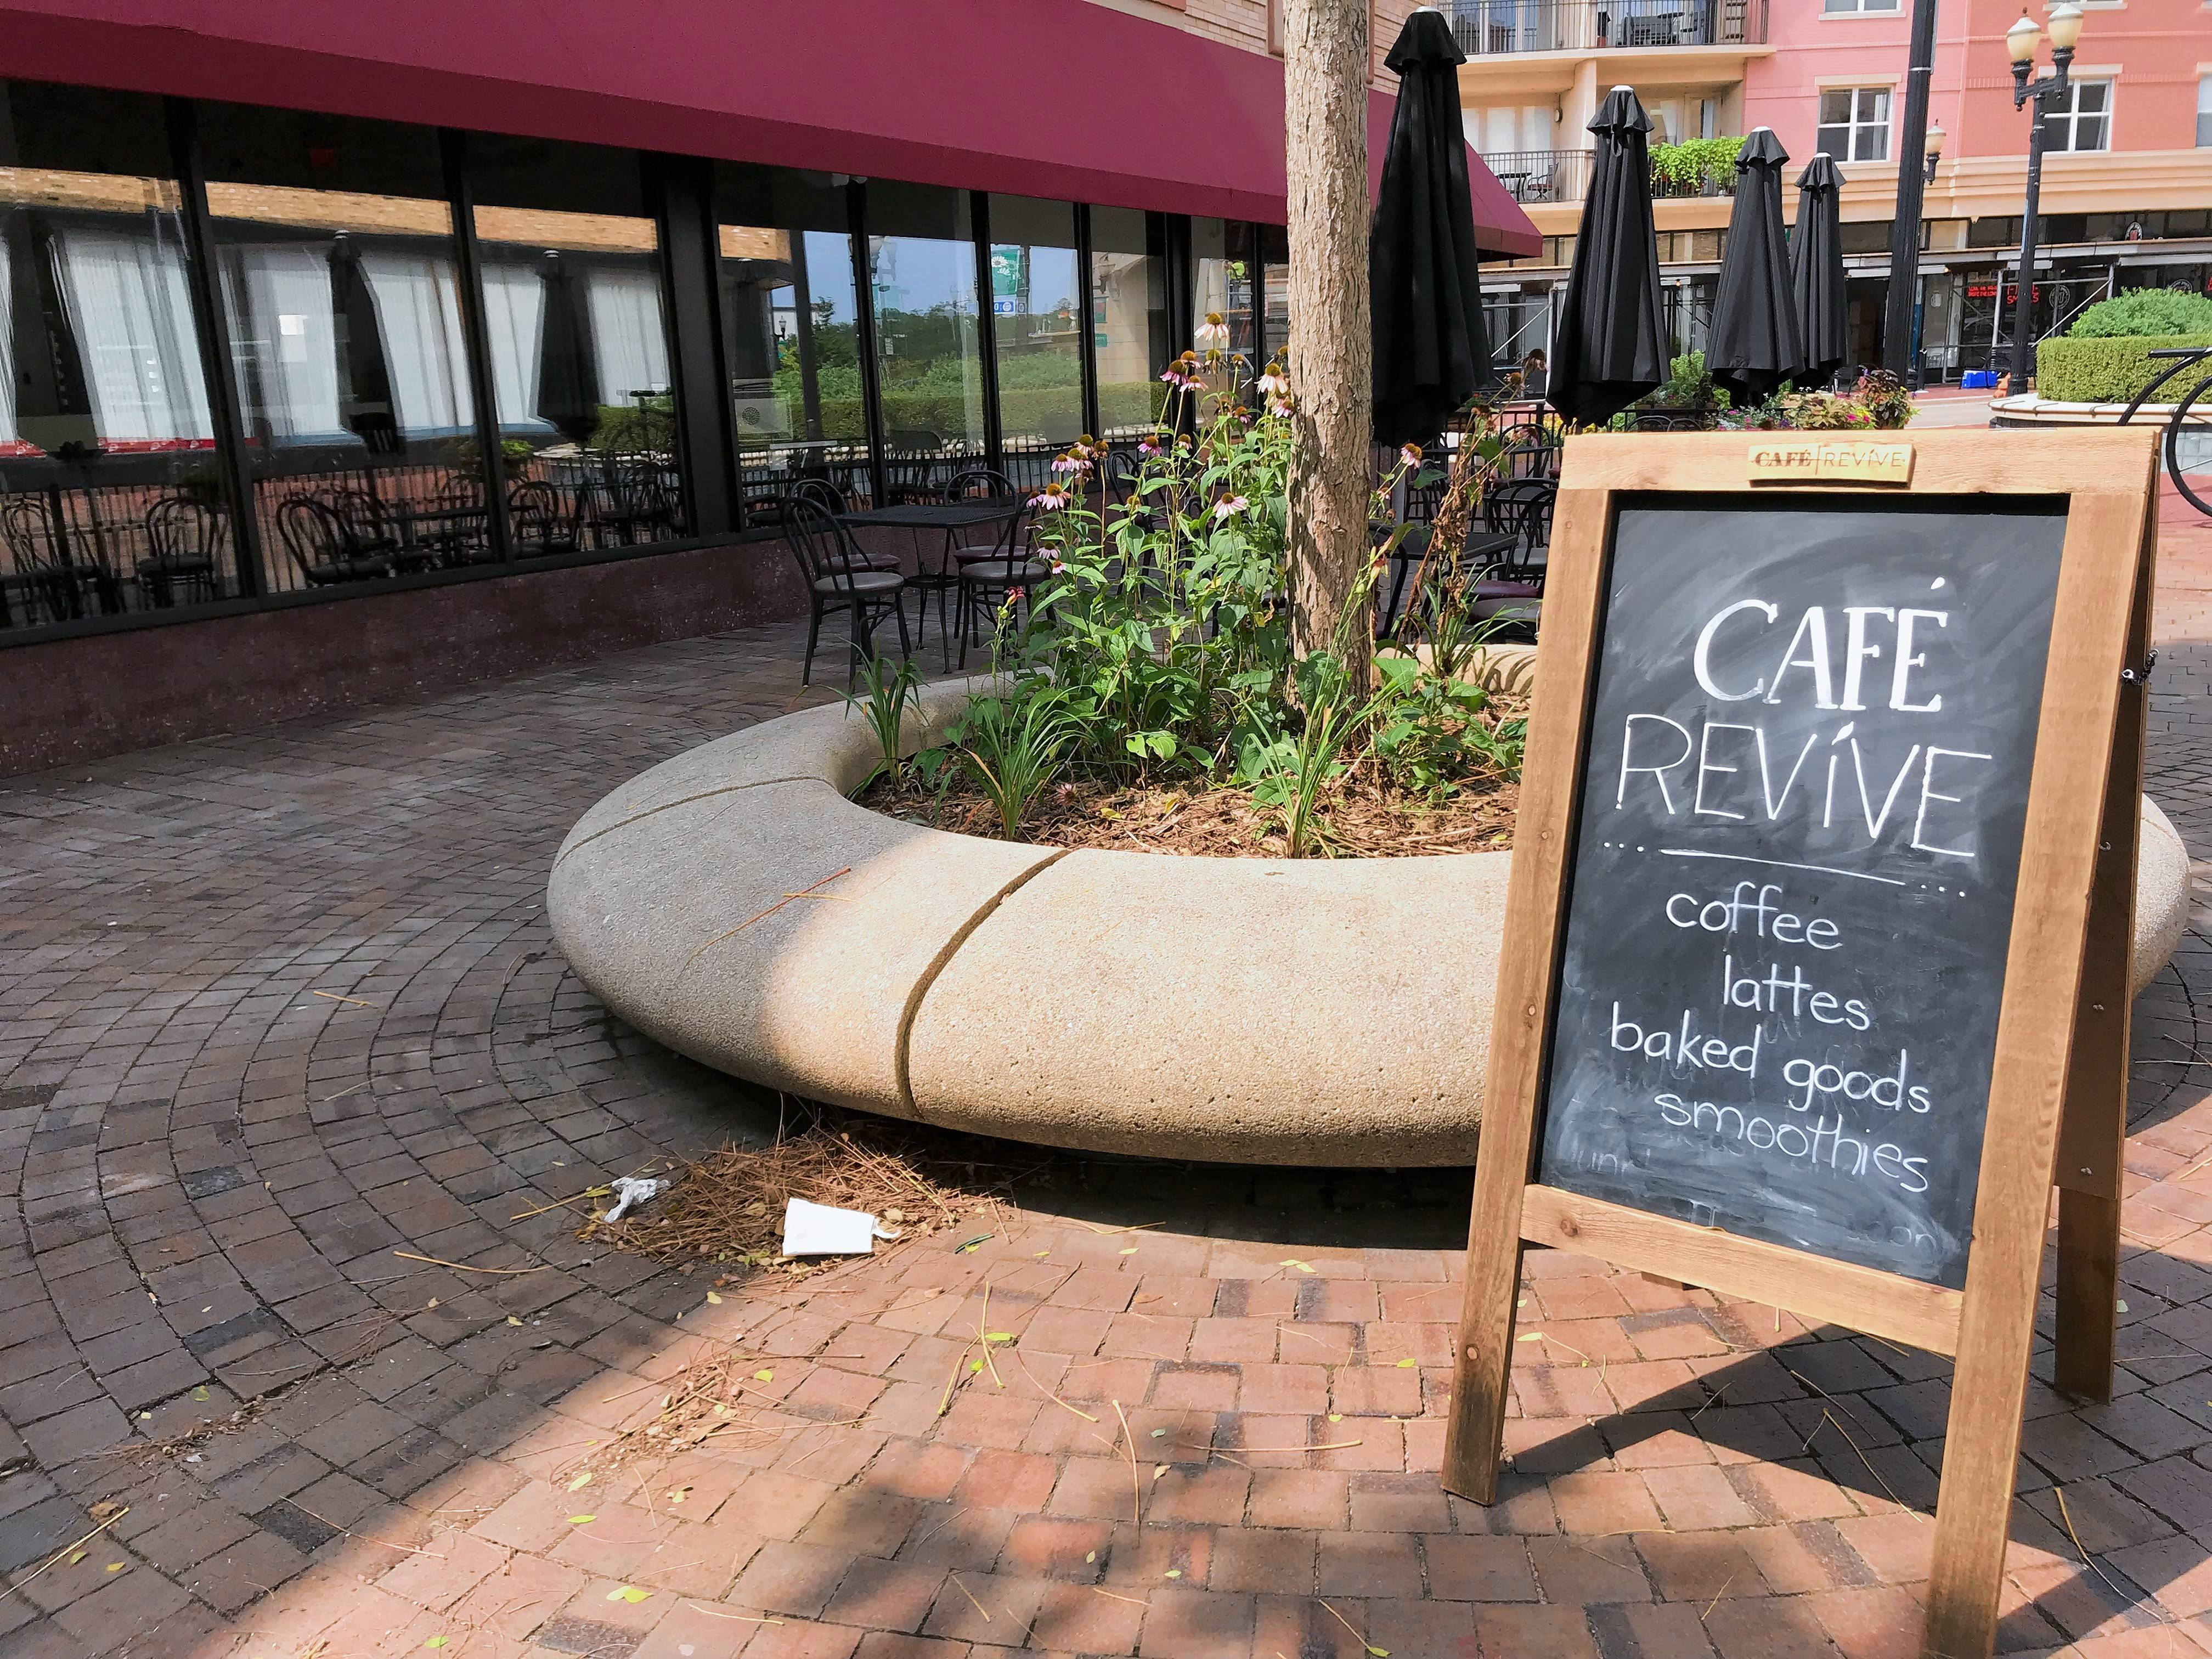 Cafe Revive is open on the second floor of Dream Hall, 51 S. Grove Ave., Elgin.